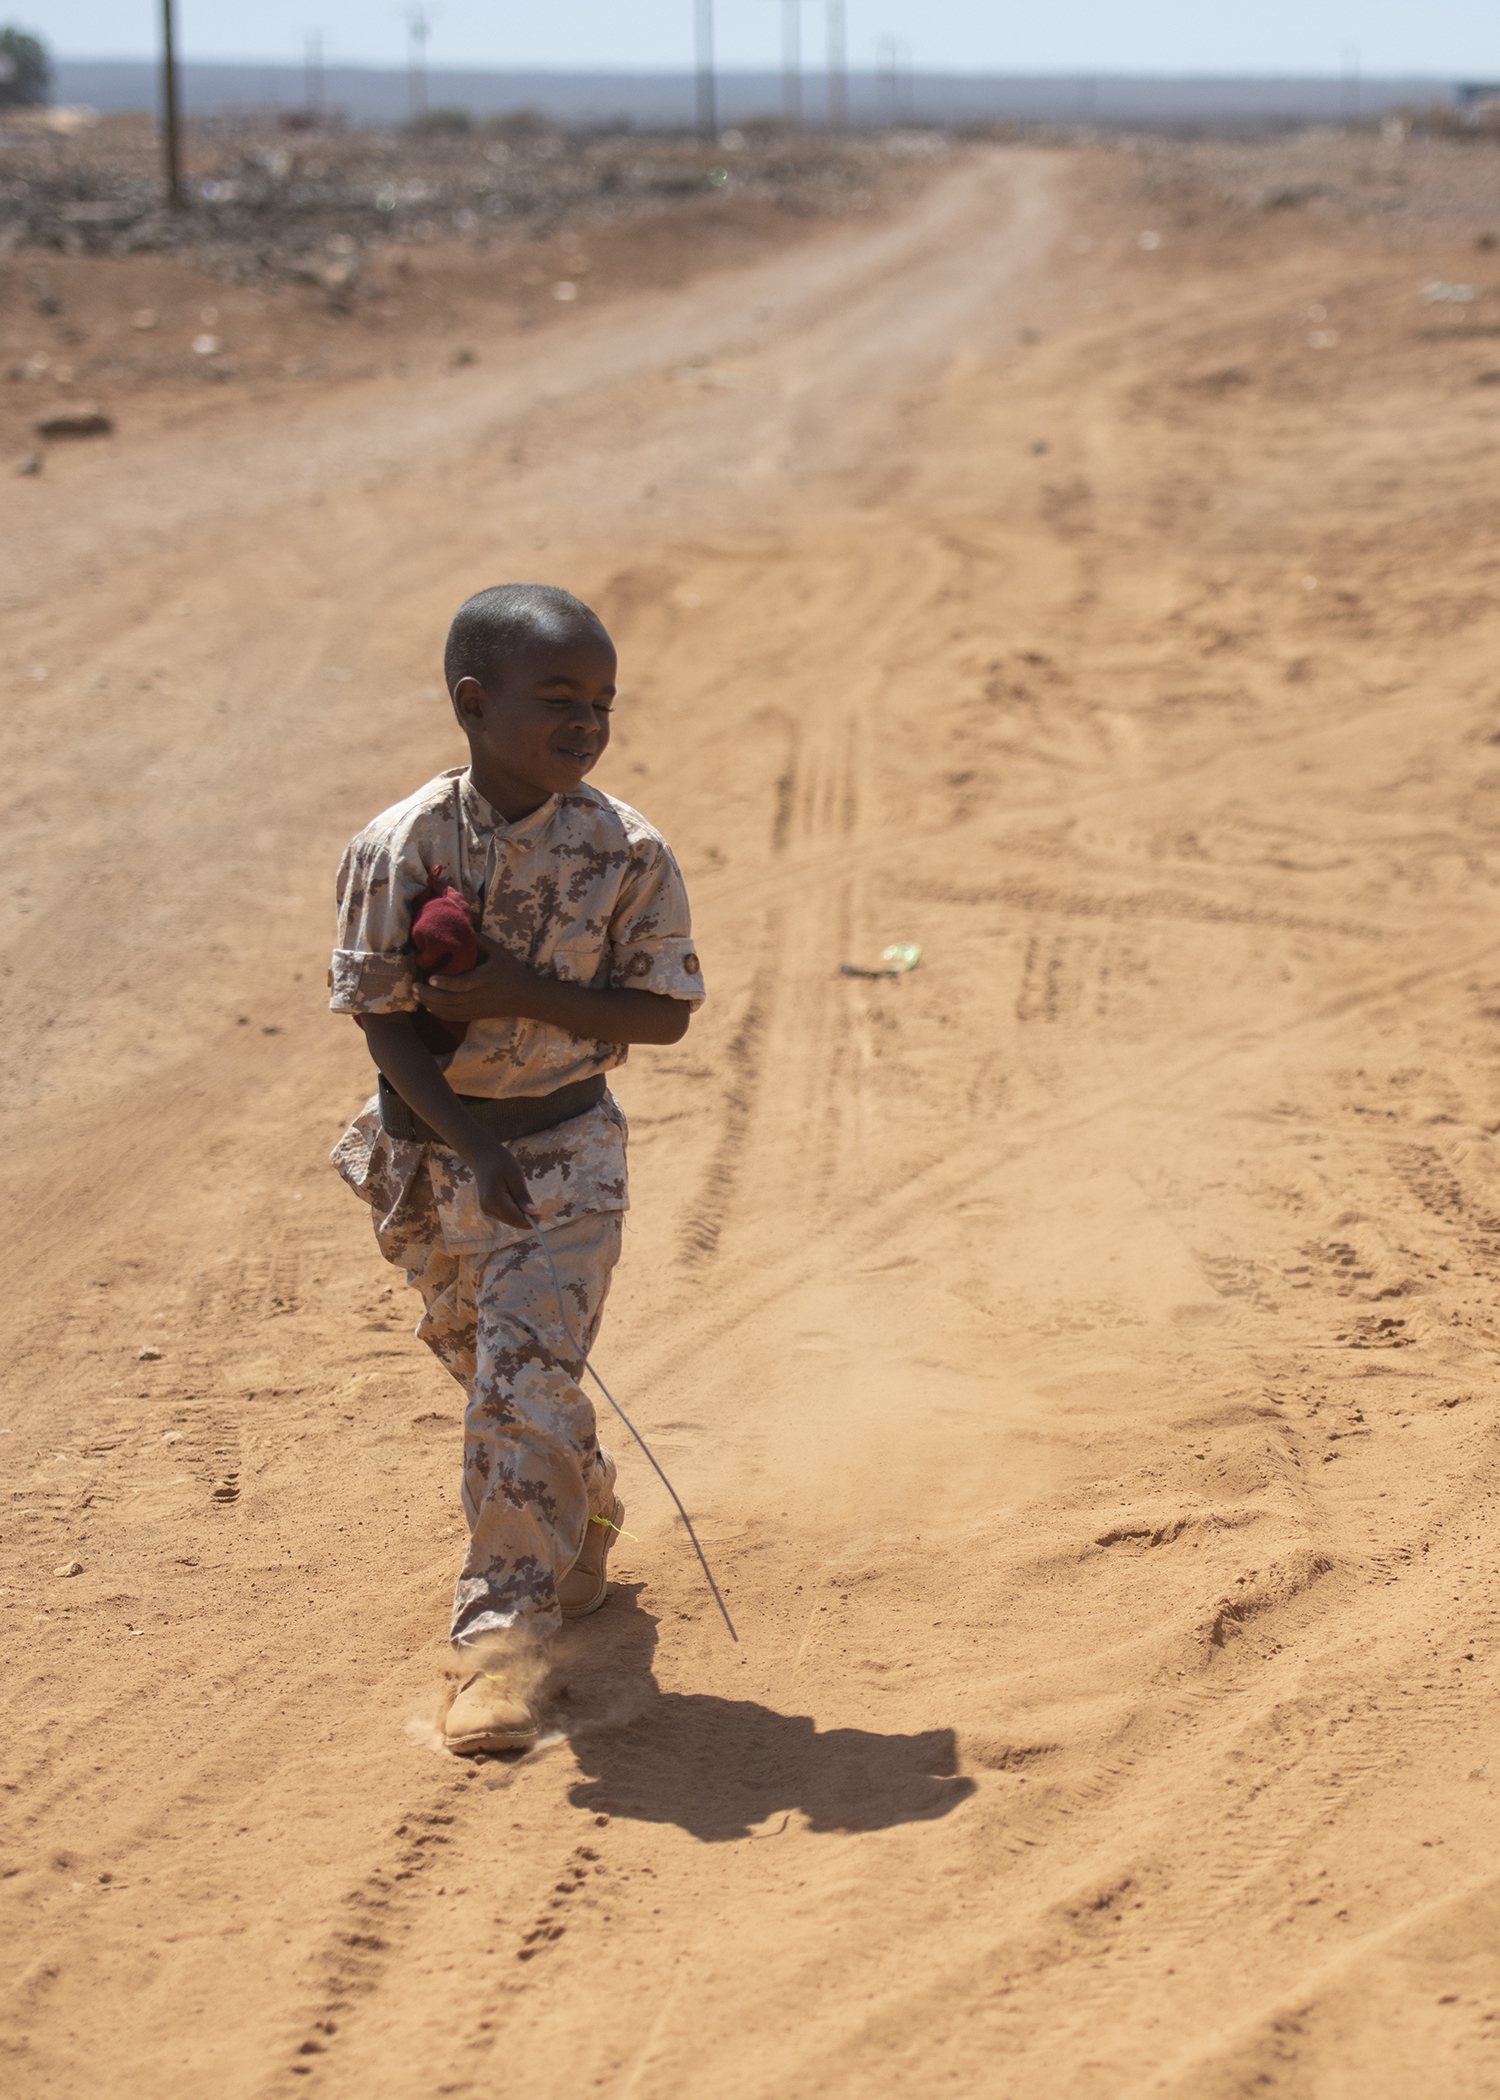 A Djiboutian youth dressed in military-style uniform plays along the road during the Ali Oune Medial Clinic ribbon cutting ceremony in Ali Oune, Djibouti, Jan. 31, 2019. The clinic, which salutes a U.S. Navy Seabee, from Naval Mobile Construction Battalion 1, have been working to complete for five months, is intended to enhance the Ministry of Health for Djibouti's ability to provide basic medical, birth and after care to the Ali Oune village and its more than 1,000 residents and rural neighbors. (U.S. Air Force photo by Tech. Sgt. Shawn Nickel)